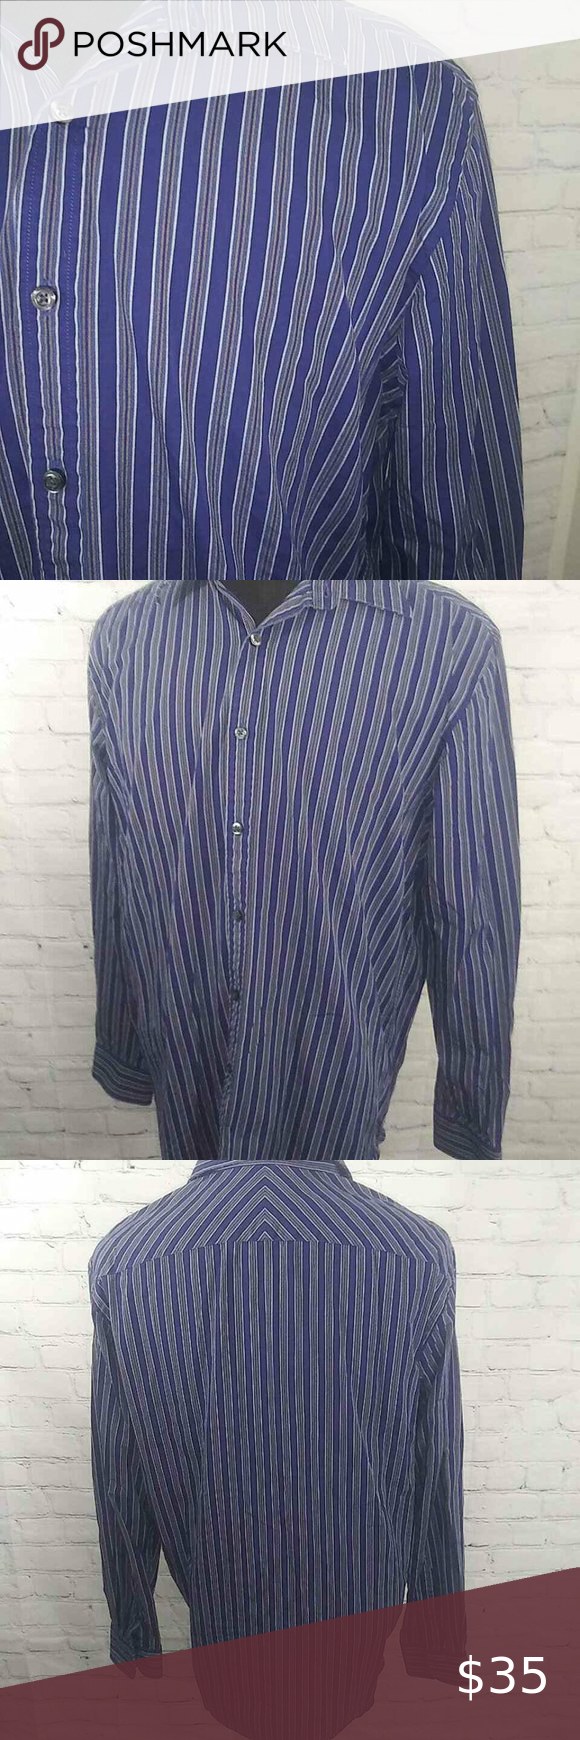 Austin Reed London Shirt Sz L Striped Cotton L S London Shirts Austin Reed Colorful Shirts